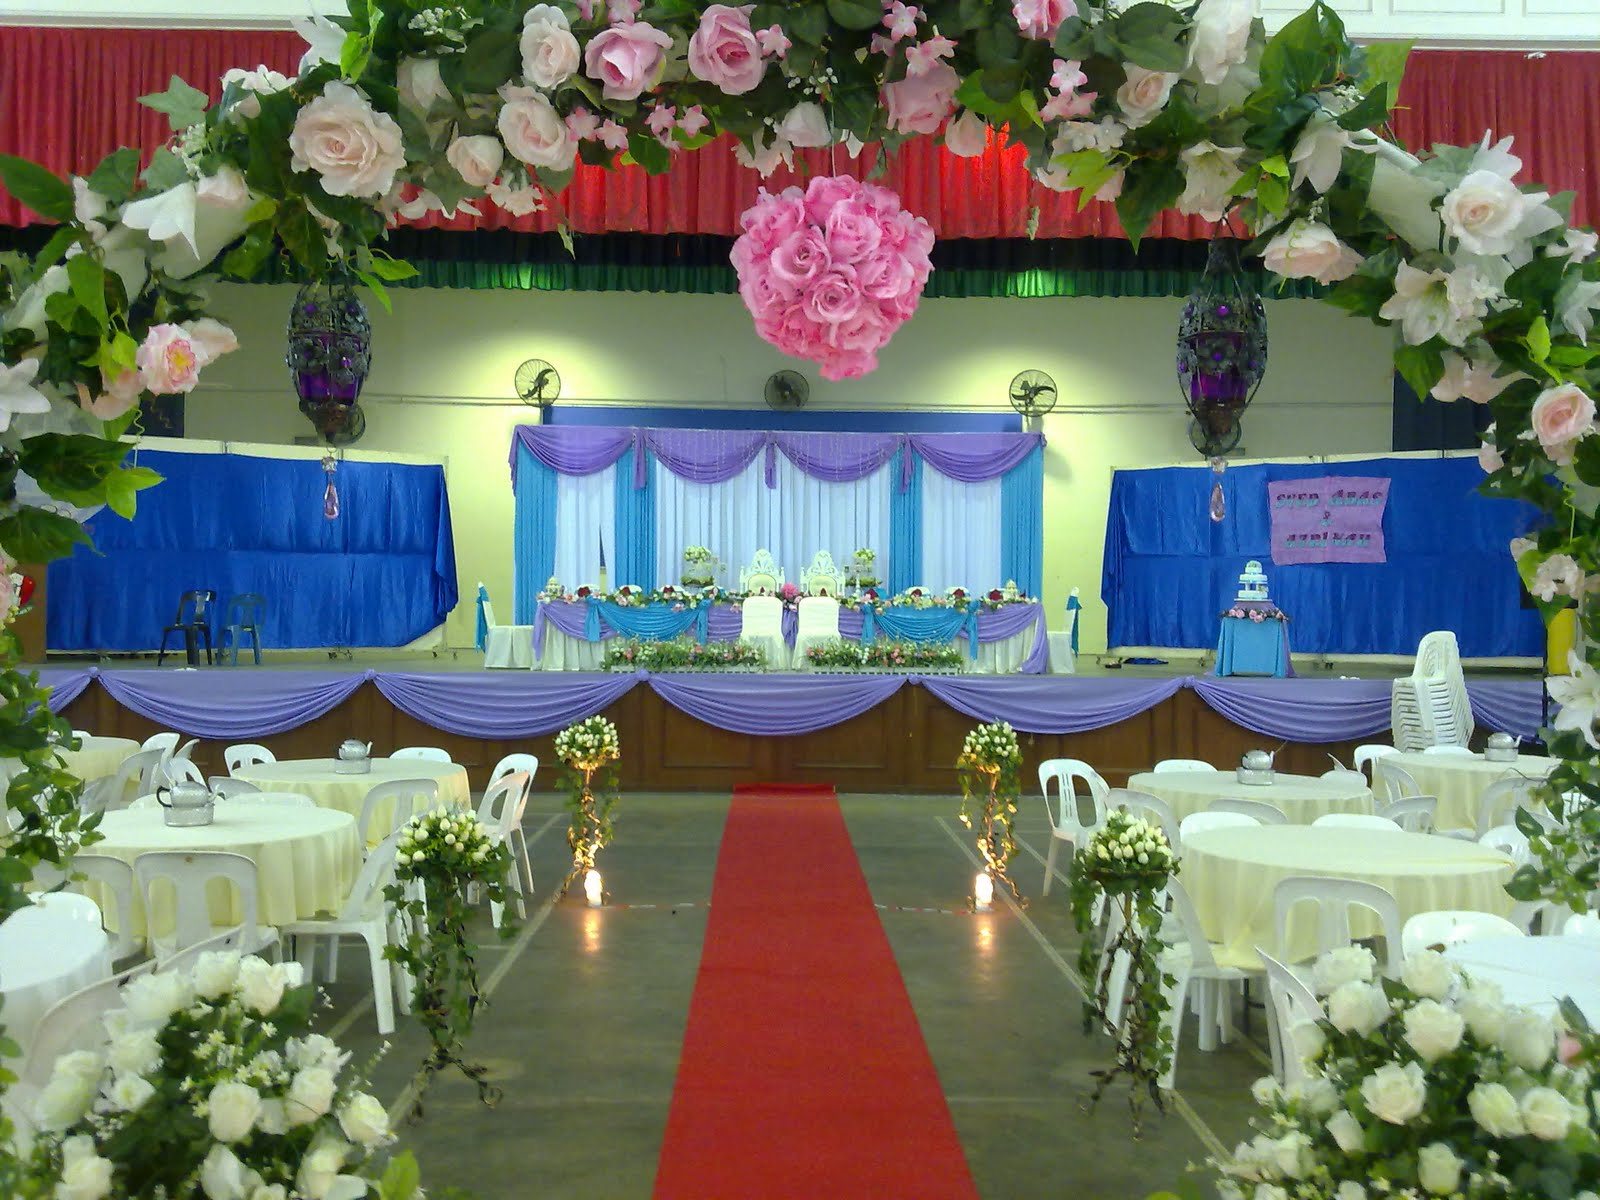 Raags management services malay style wedding dinner for Wedding dinner decoration ideas